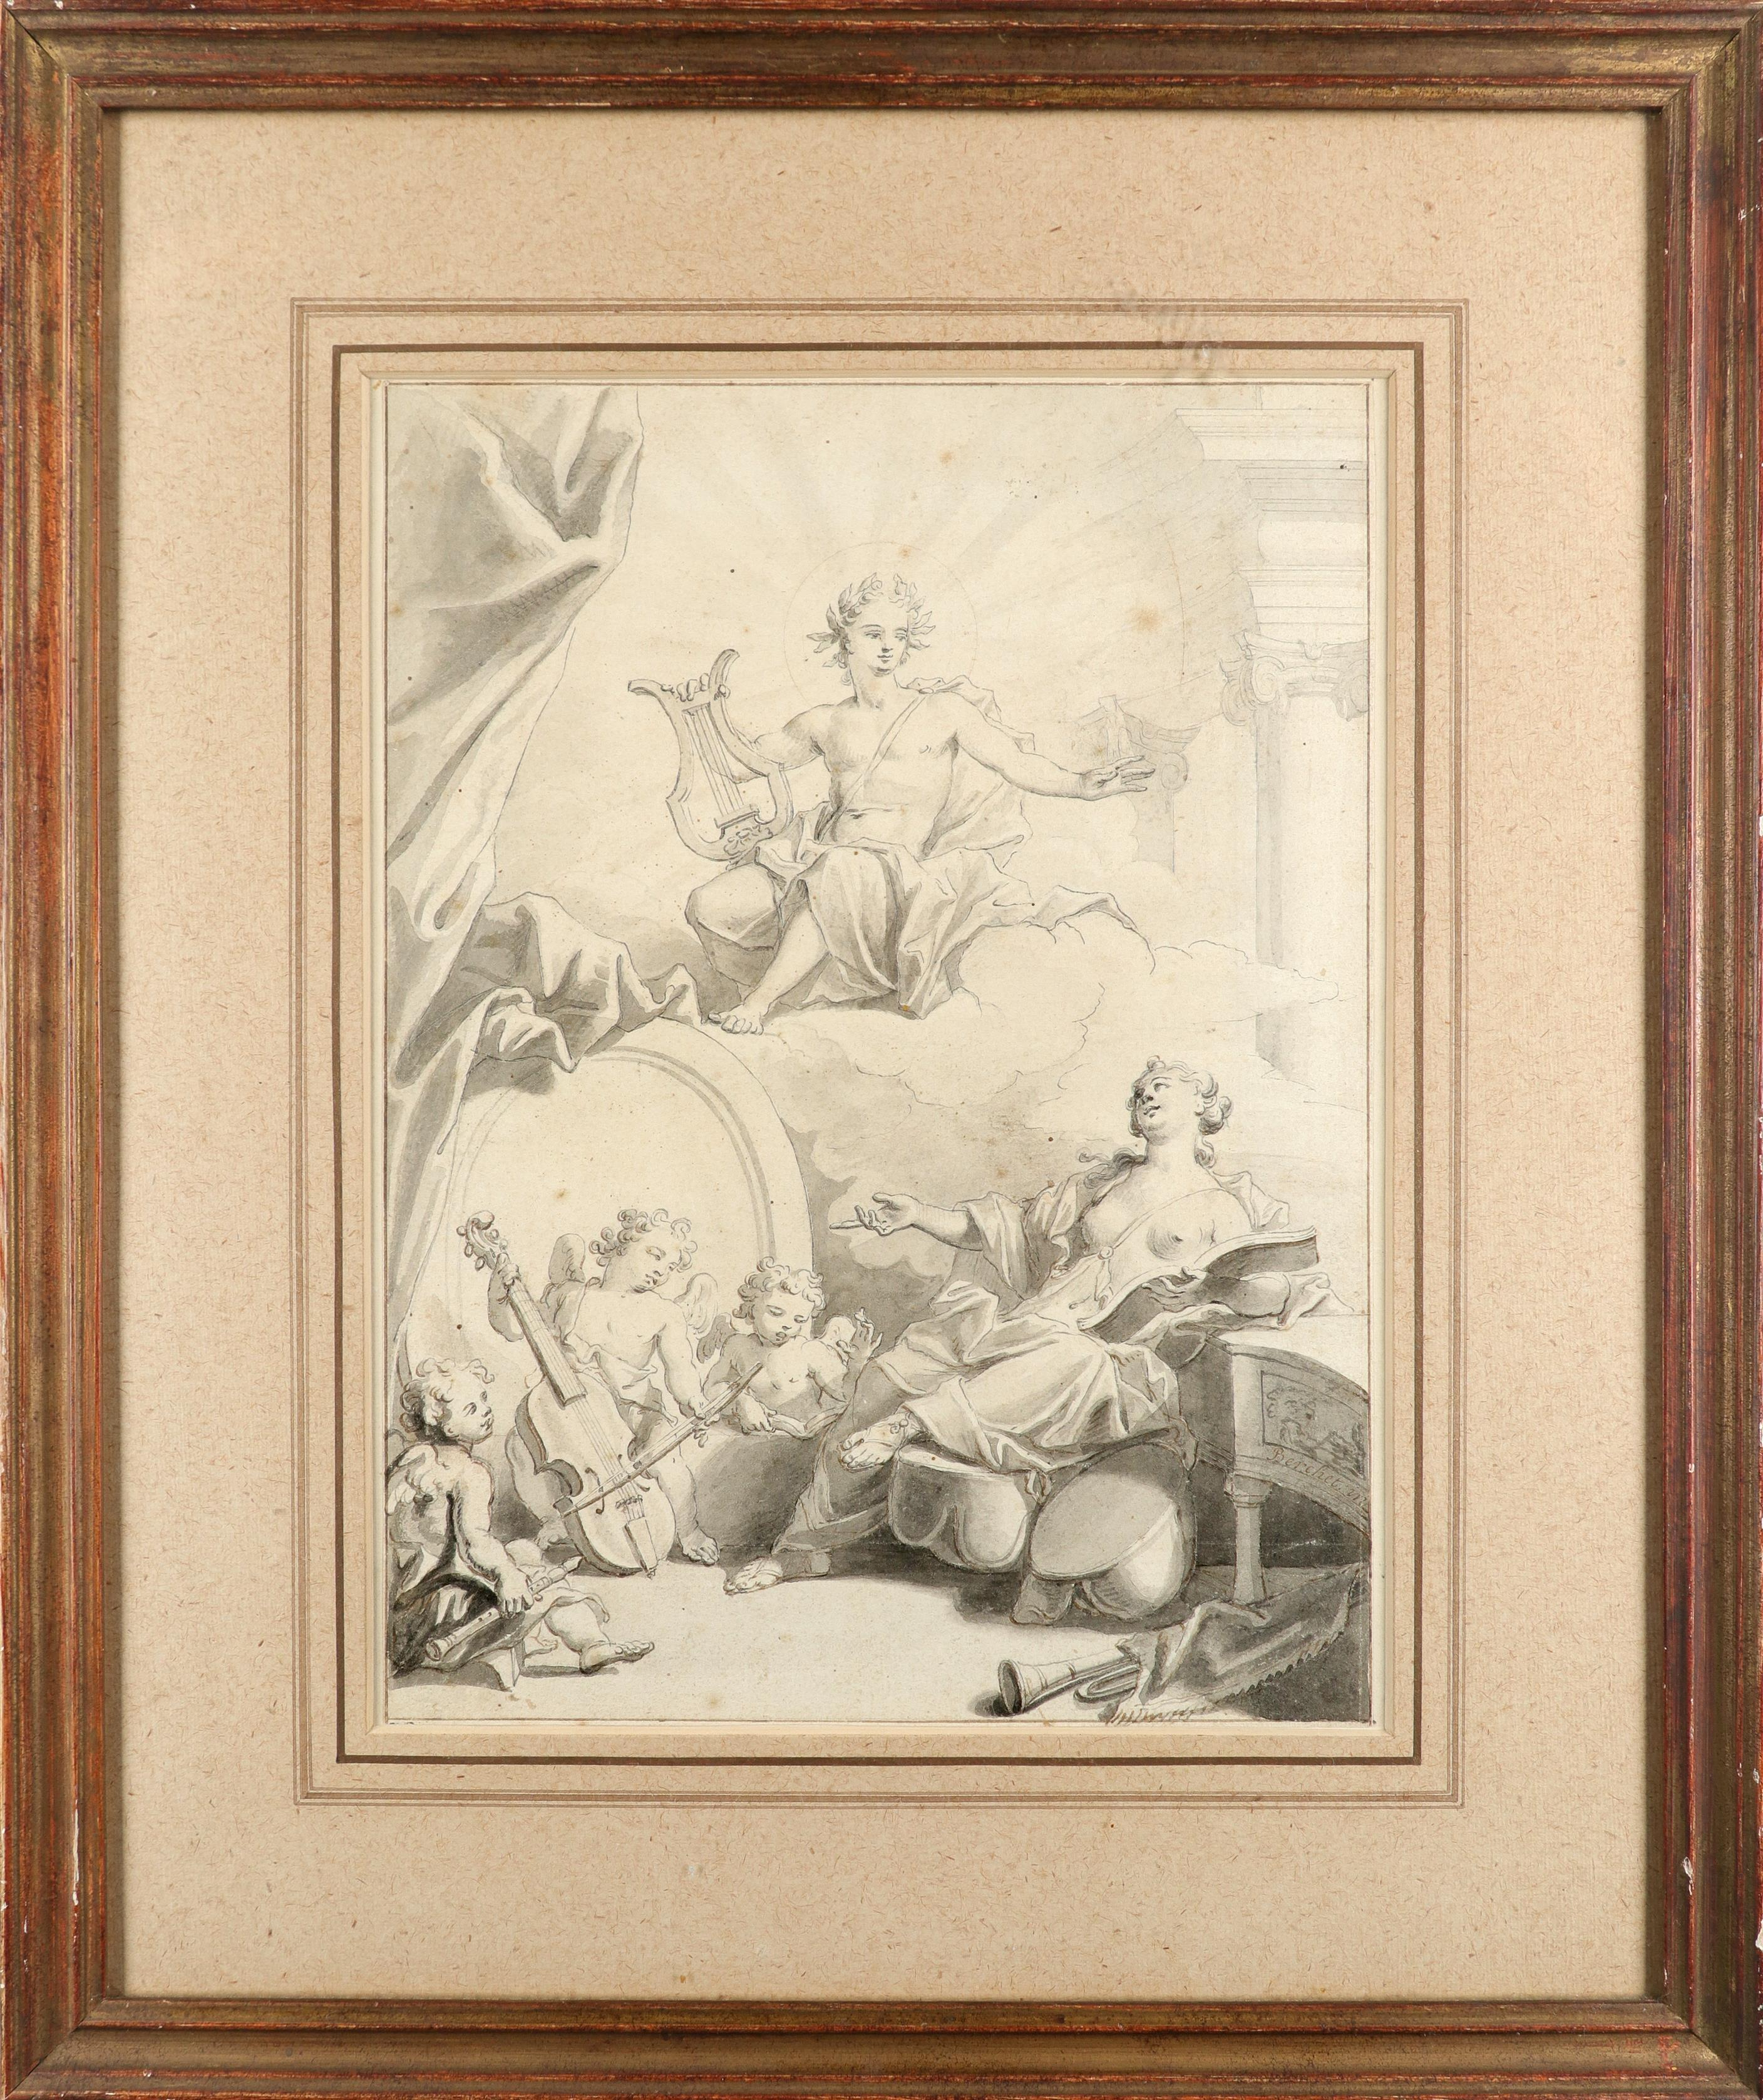 Pierre Berchet (French 1659-1719/20) Design for a frontispiece depicting Apollo, a muse and putti - Image 2 of 3